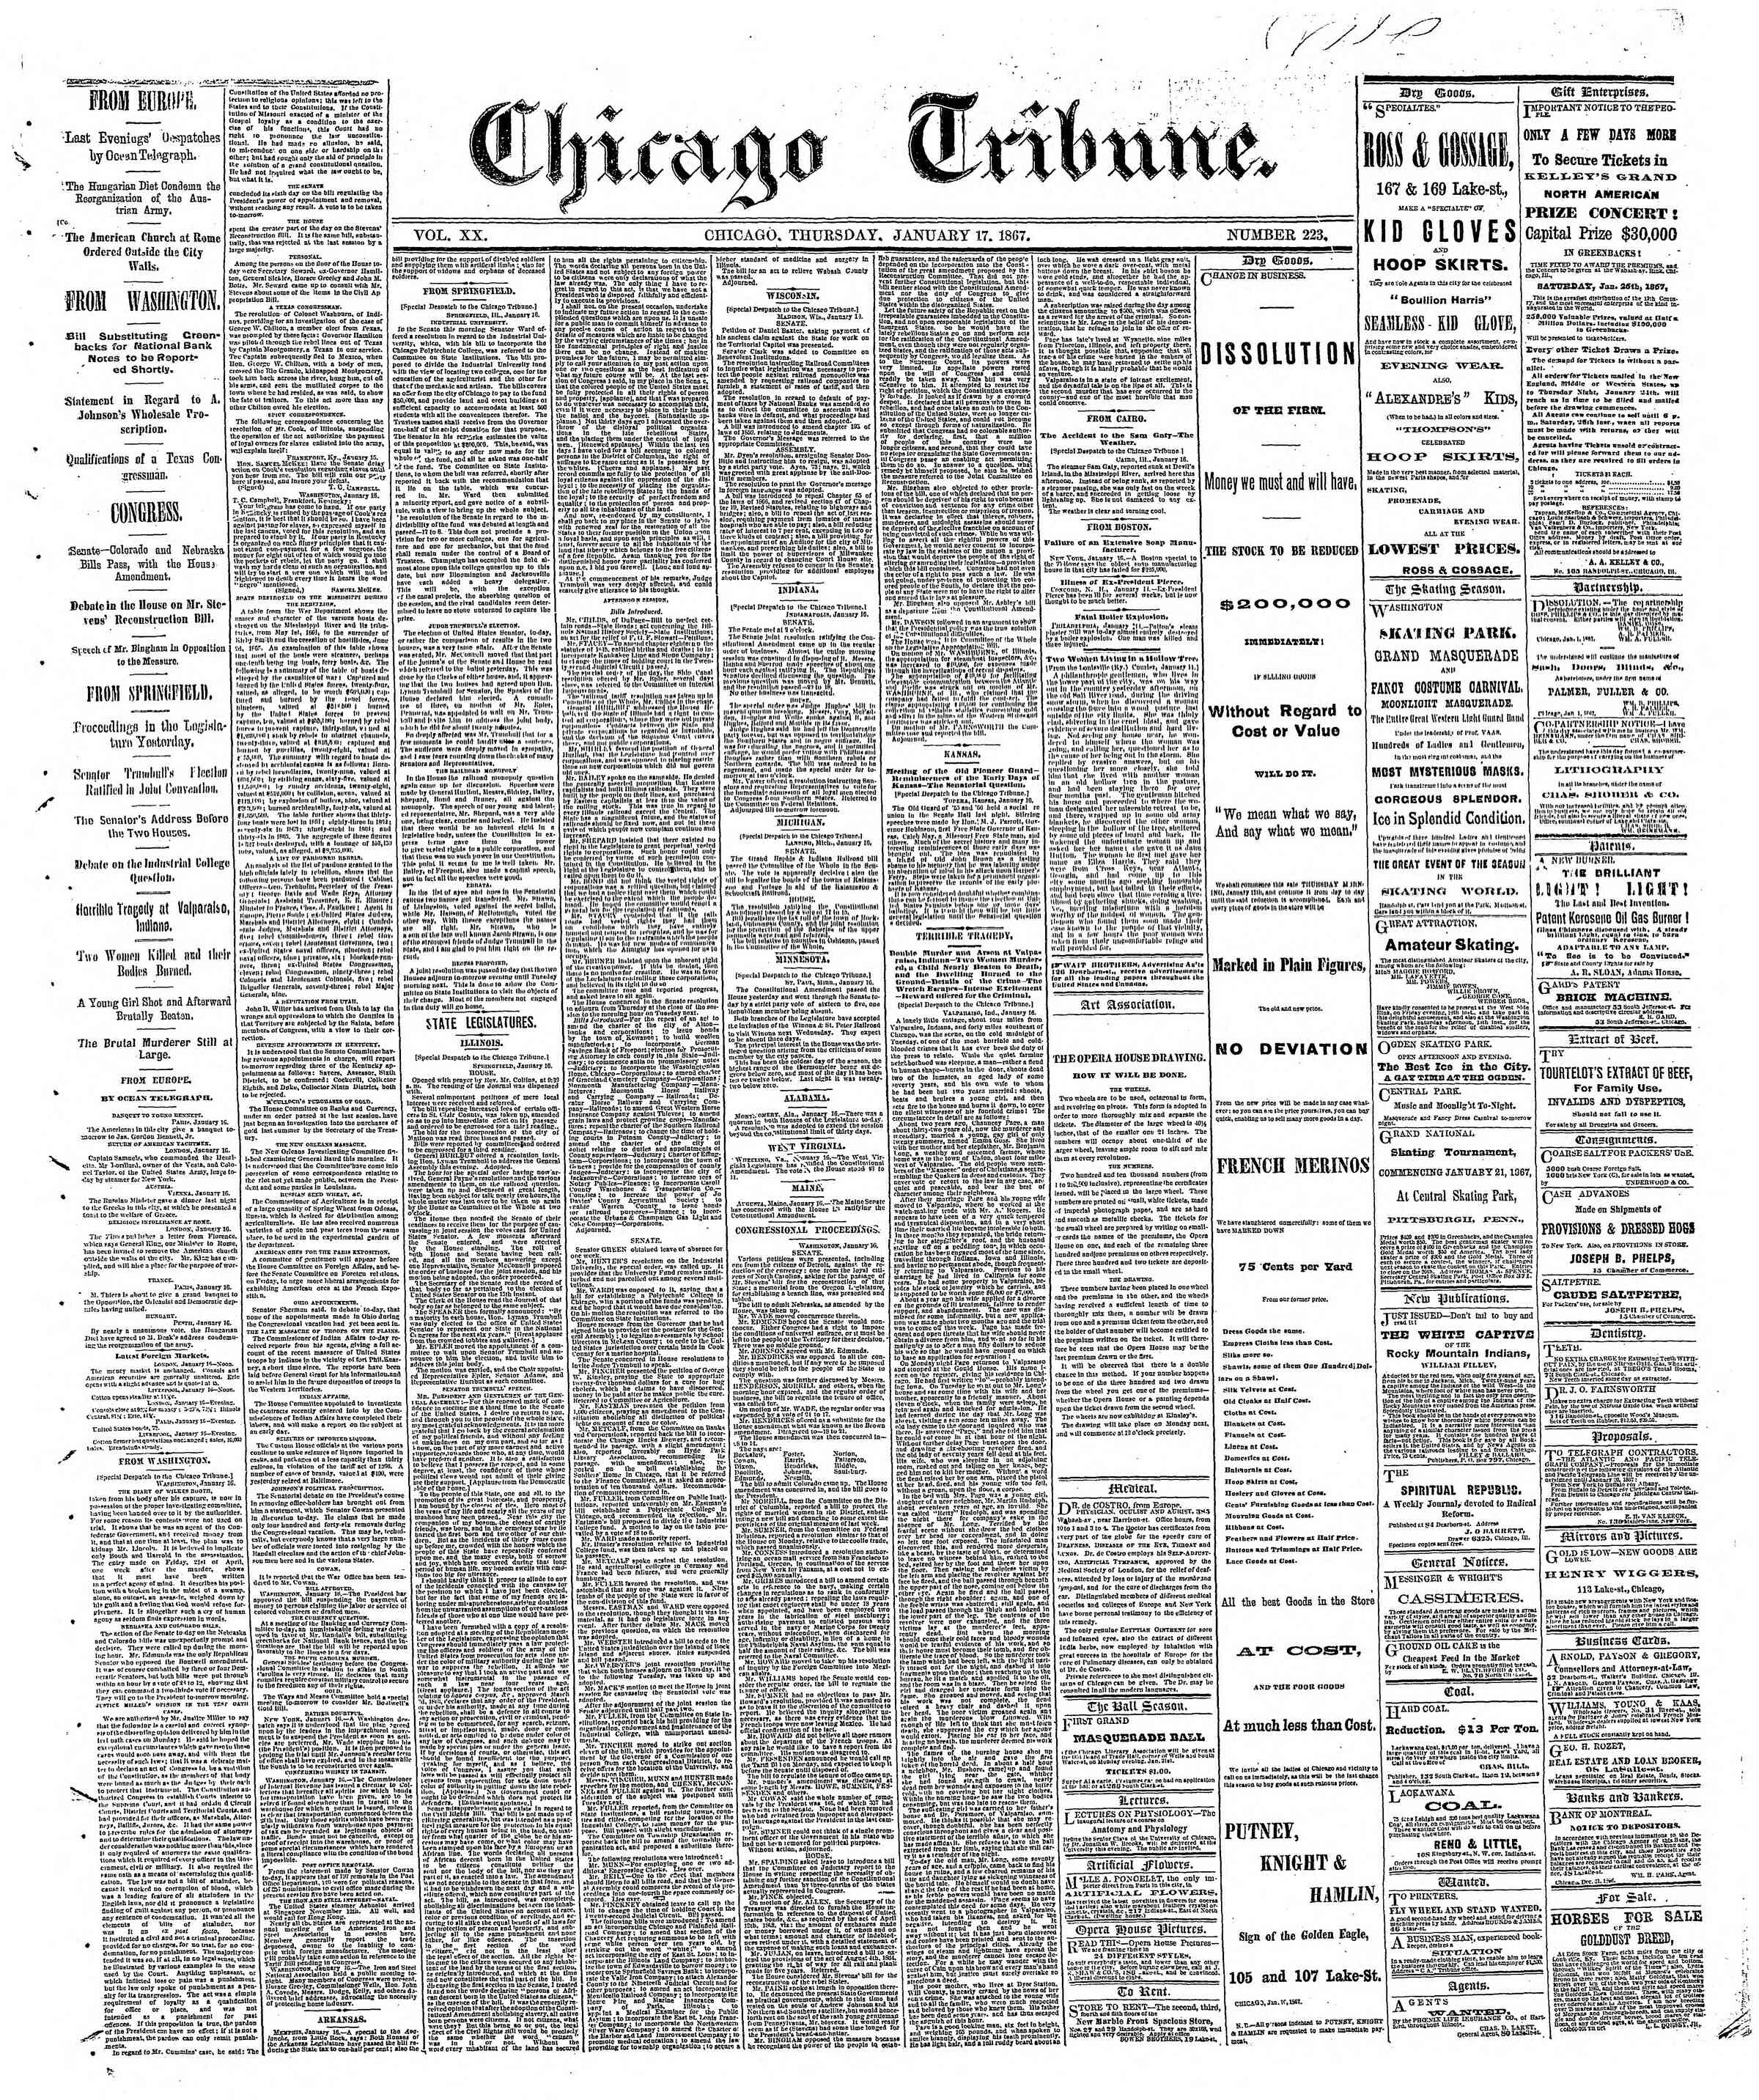 Newspaper of The Chicago Tribune dated 17 Ocak 1867 Page 1